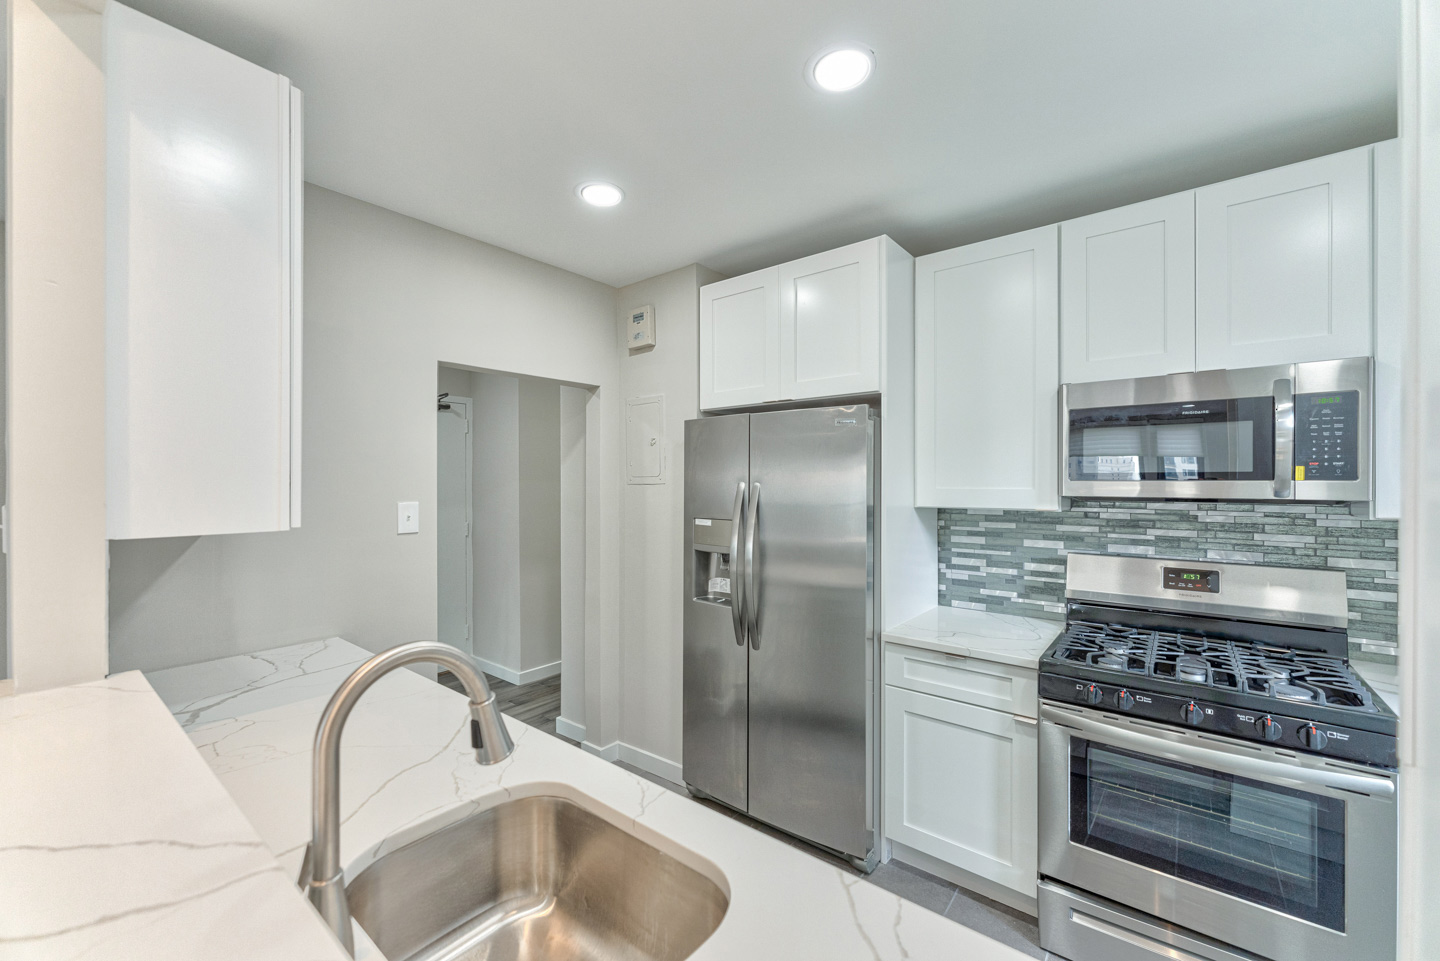 kitchen at the Wellington luxury condos for sale in Rittenhouse Square neighborhood